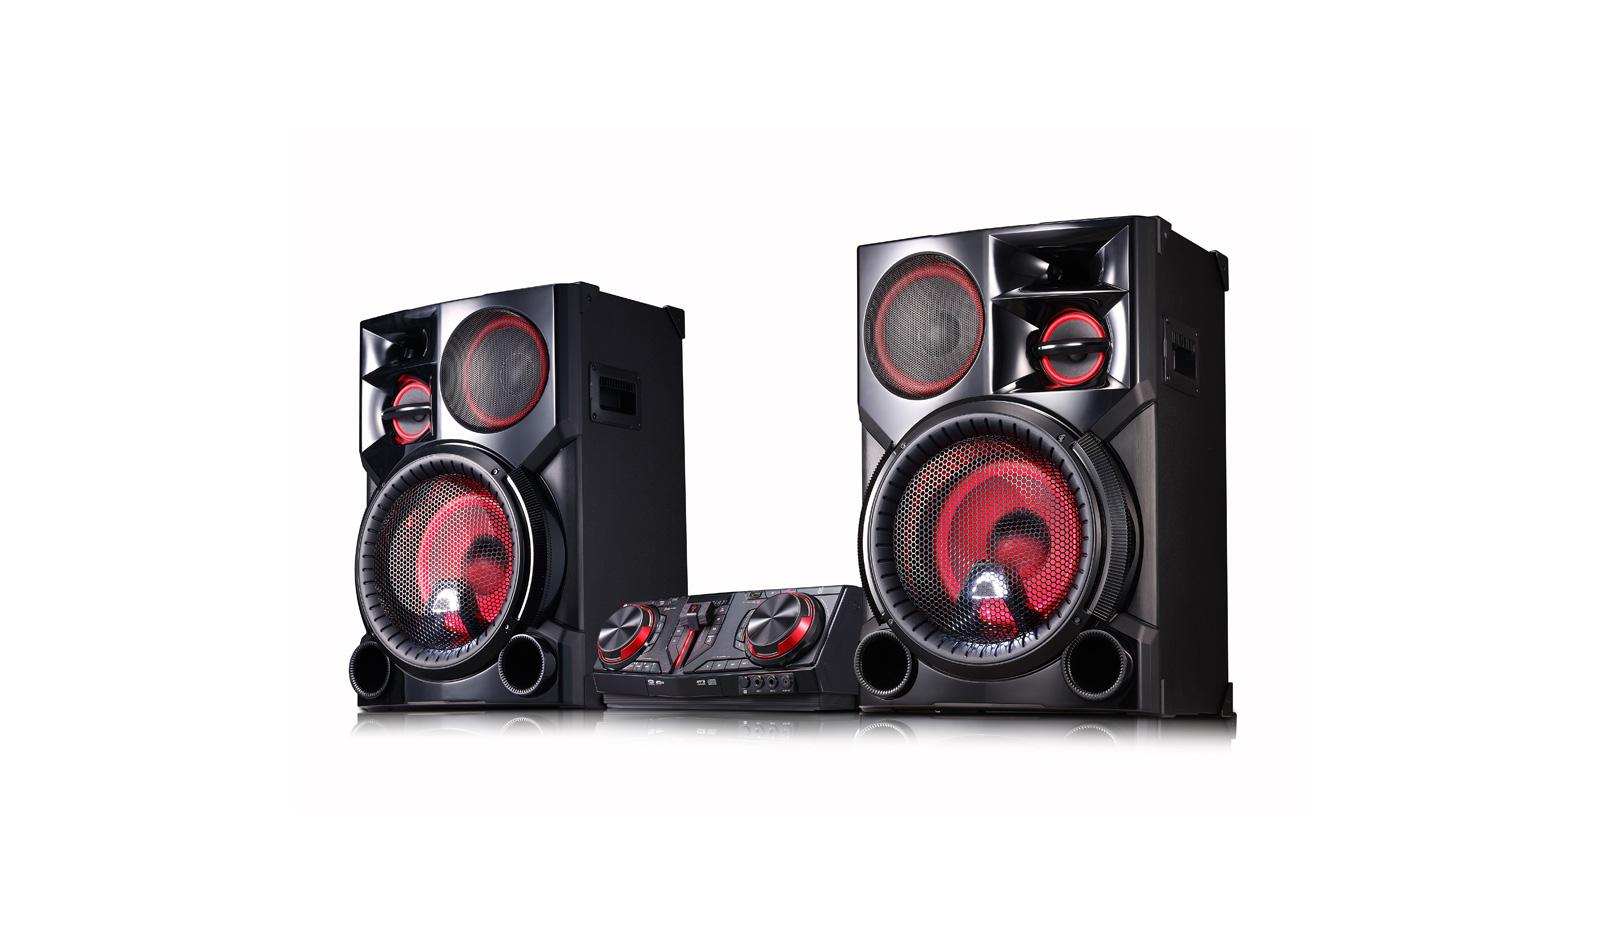 Lg Cj98 Xboom 3500w Hi Fi Entertainment System With Bluetooth Outdoor Audio Wiring For Speakers Connectivity Usa